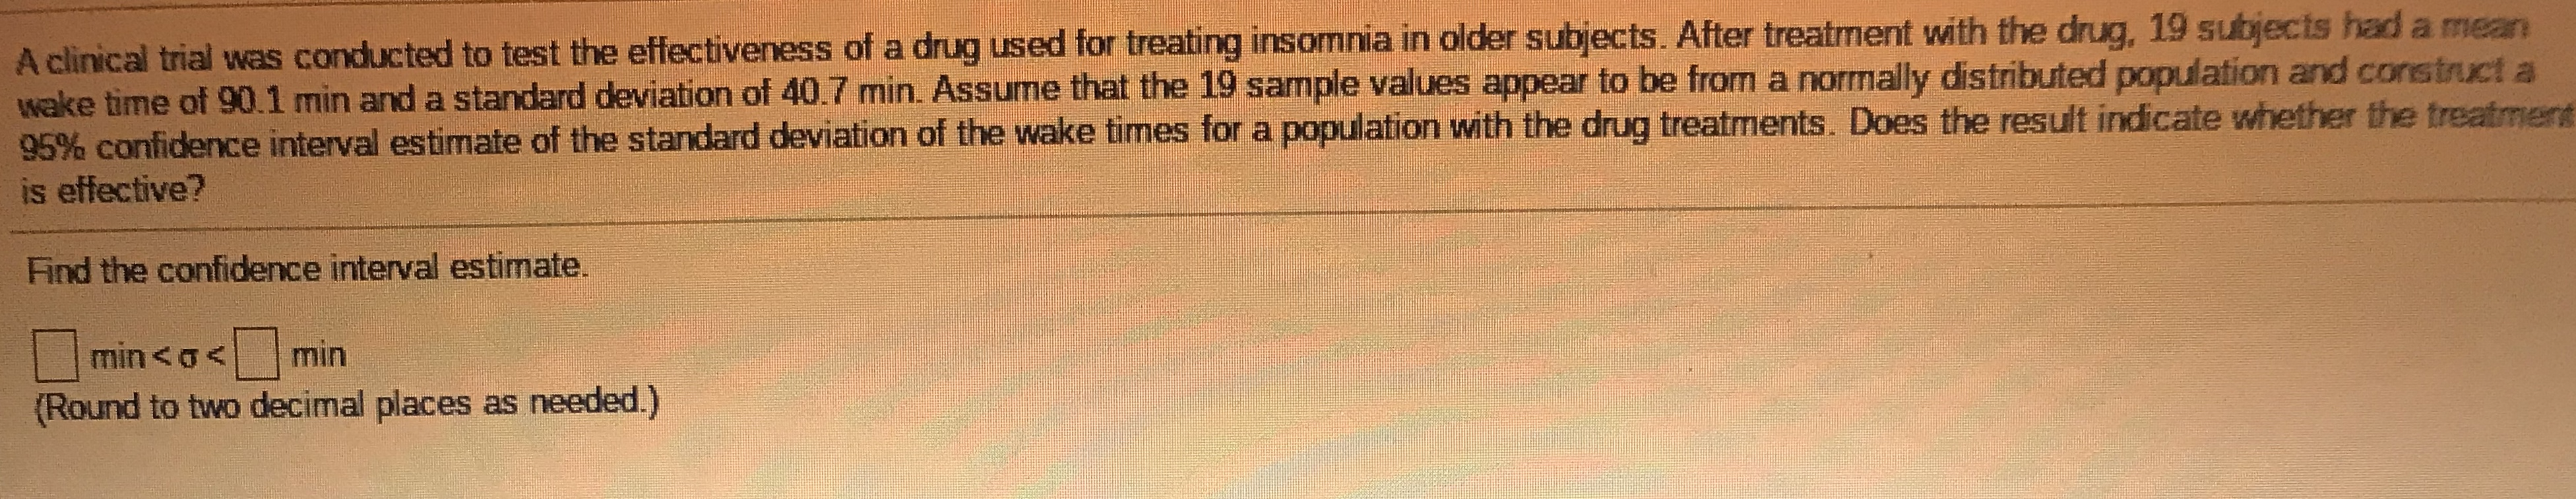 A clinical trial was conducted to test the effectiveness of a drug used for treating insomnia in older subjects. After treatment with the drug, 19 subjects had a mean wake time of 90.1 min and a standard deviation of 40.7 min. Assume that the 19 sample values appear to be from a normally distributed population and construct a 95% confidence interval estimate of the standard deviation of the wake times for a population with the drug treatments. Does the result indicate whether the treatmen is effective?